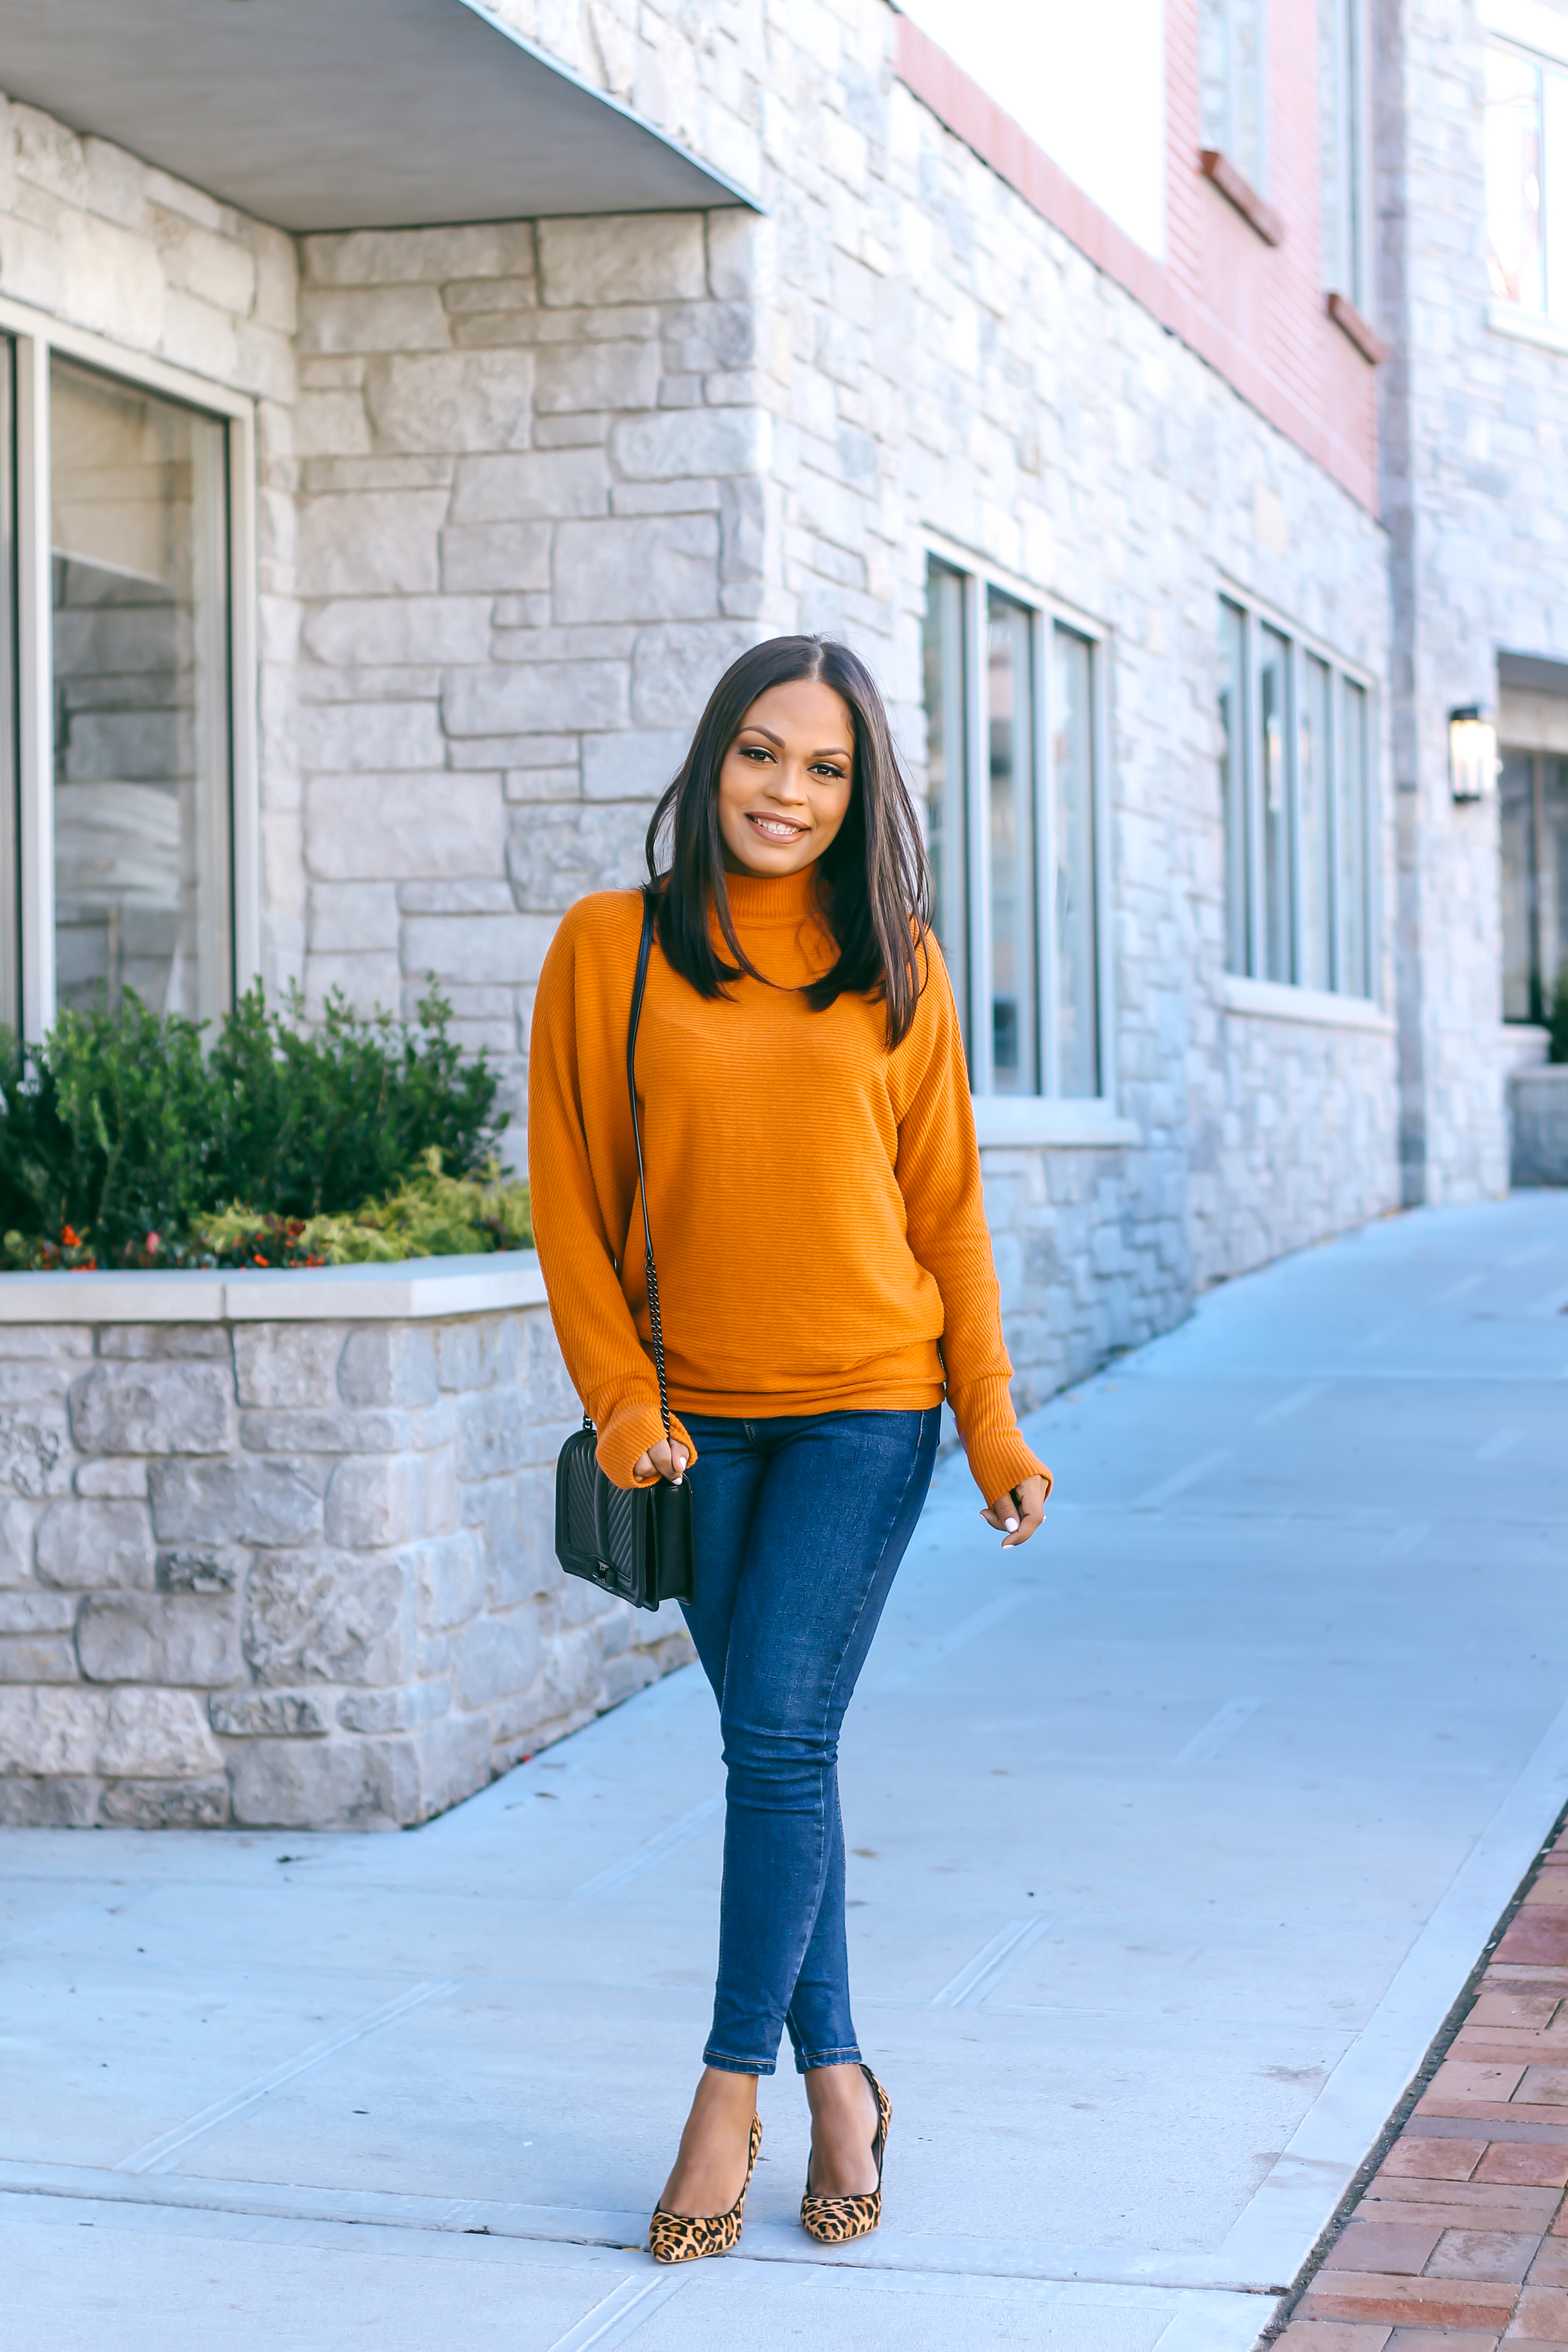 Petite Women styling Thanksgiving outfits